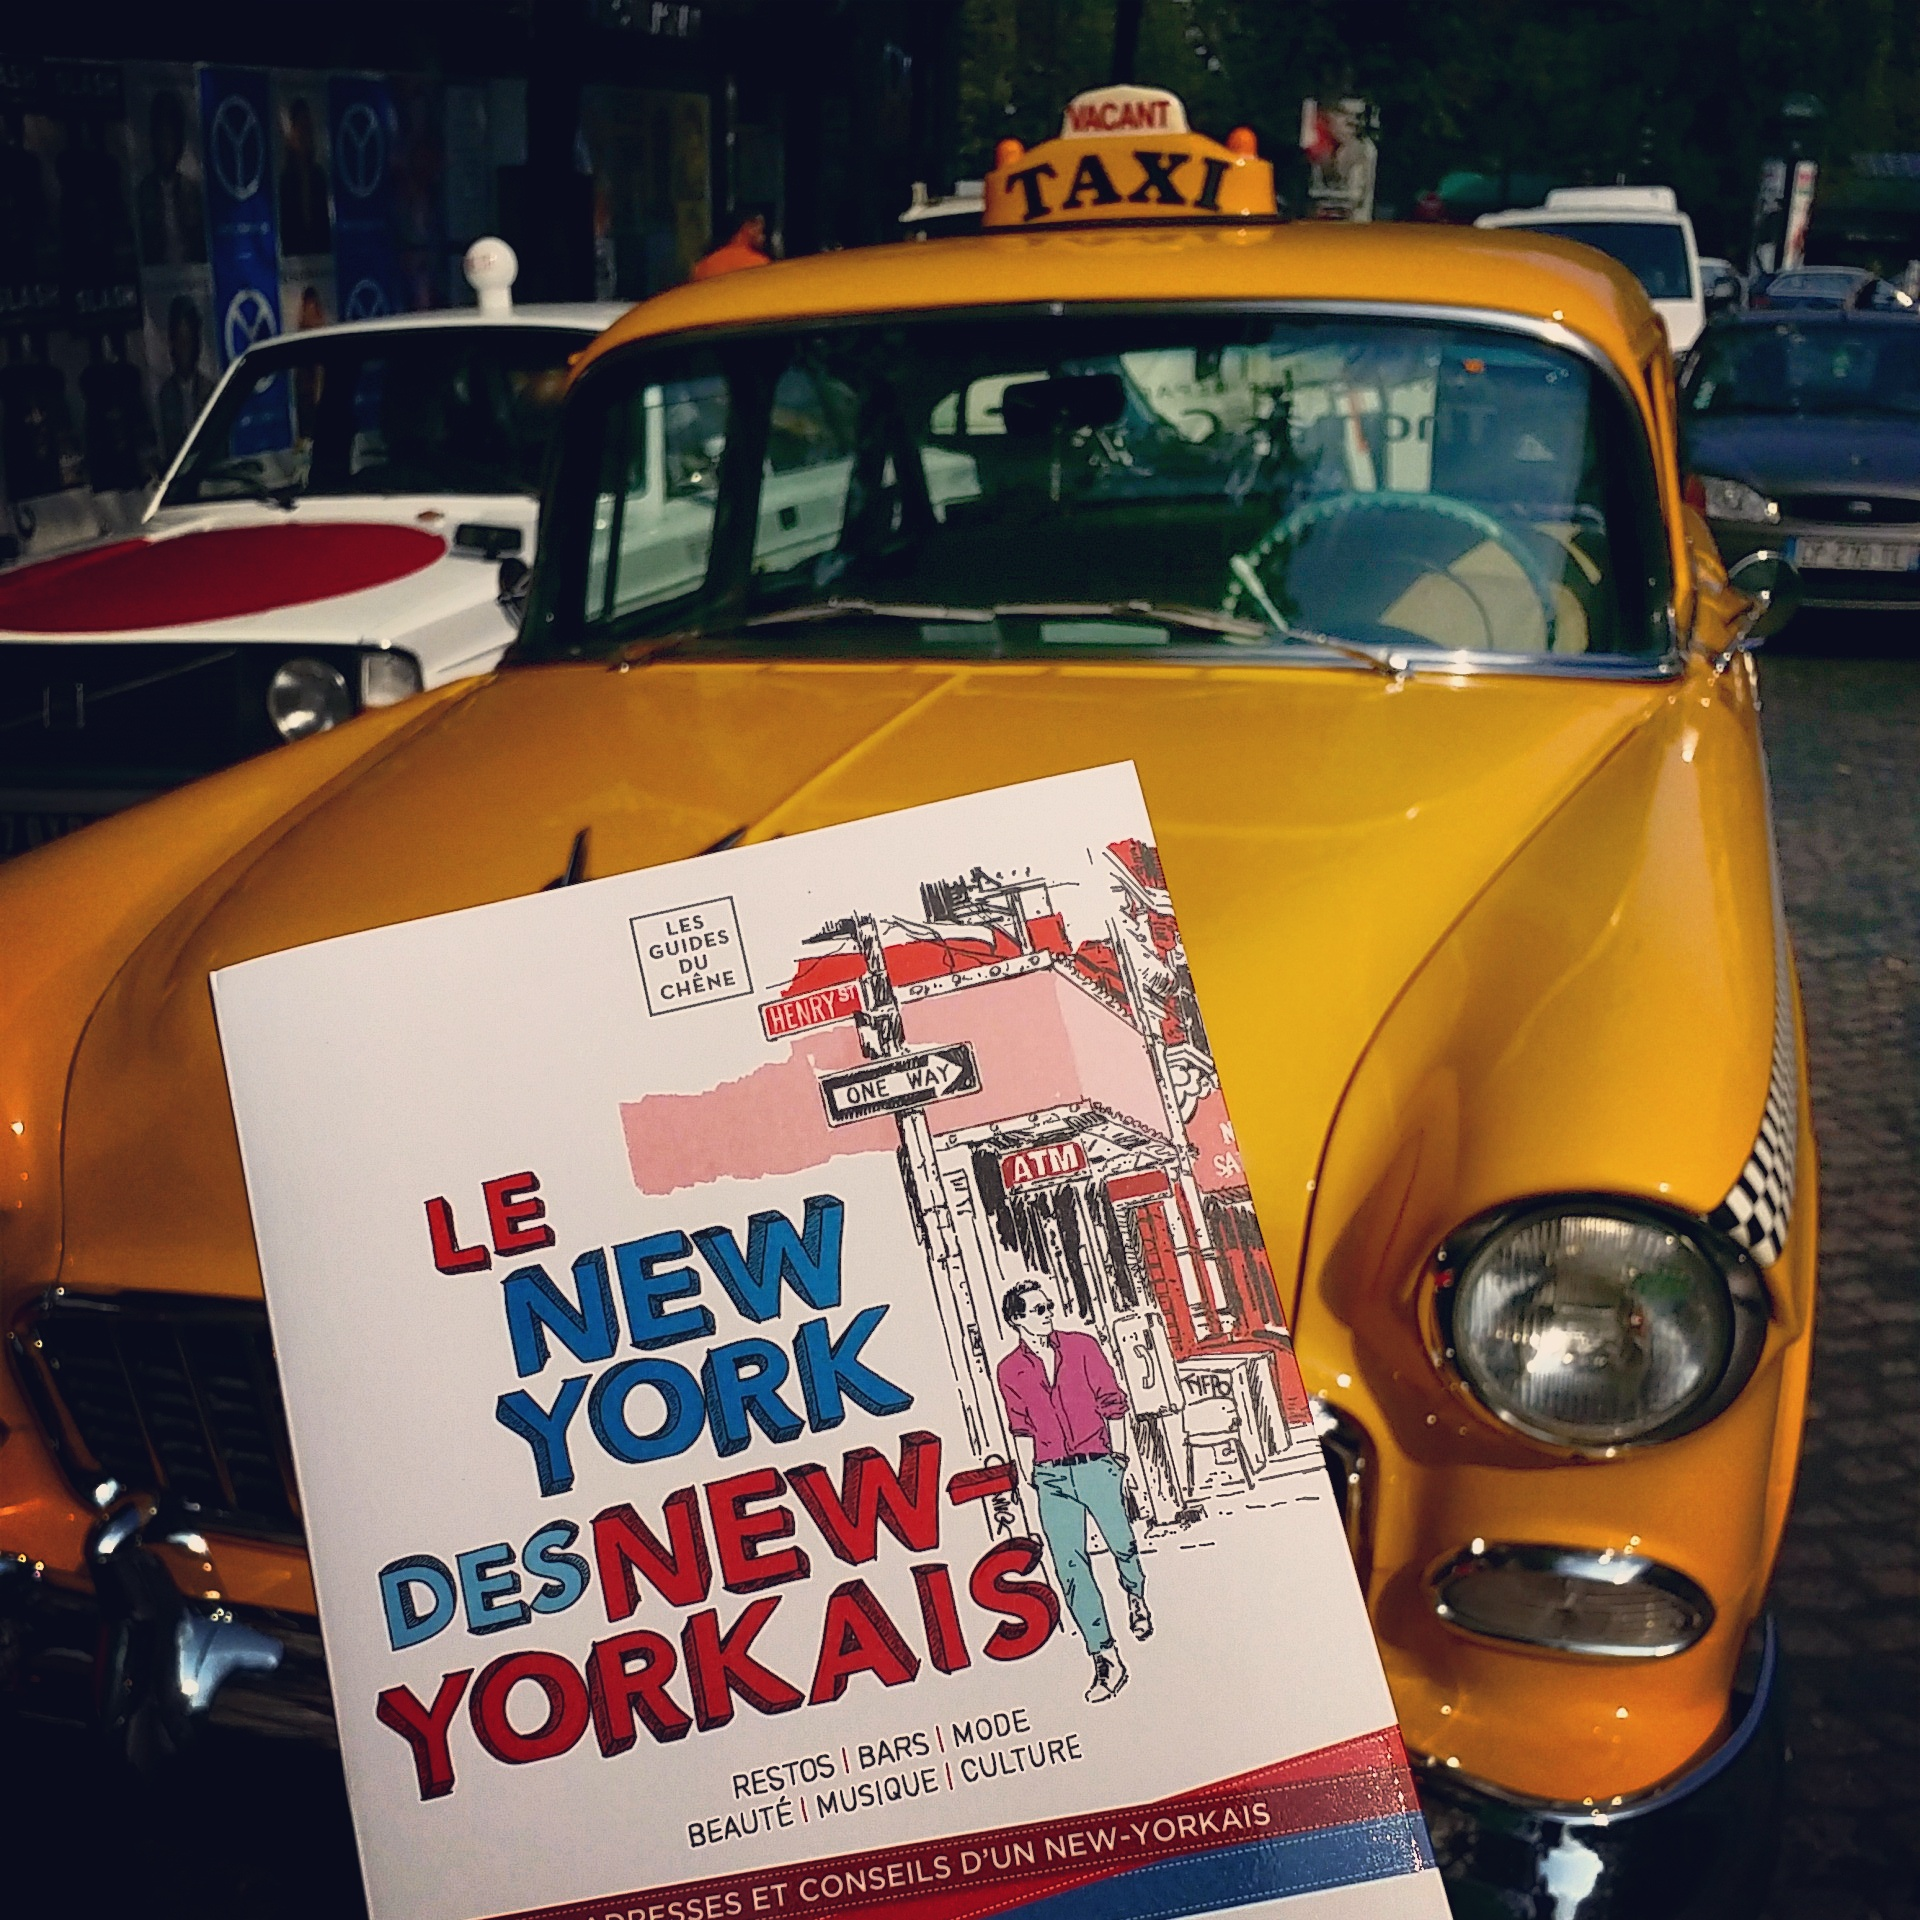 Le New York des new-yorkais de Karim Geist avec yellow cab city tour guide Editions les guides du Chêne street photo by United States of paris blog